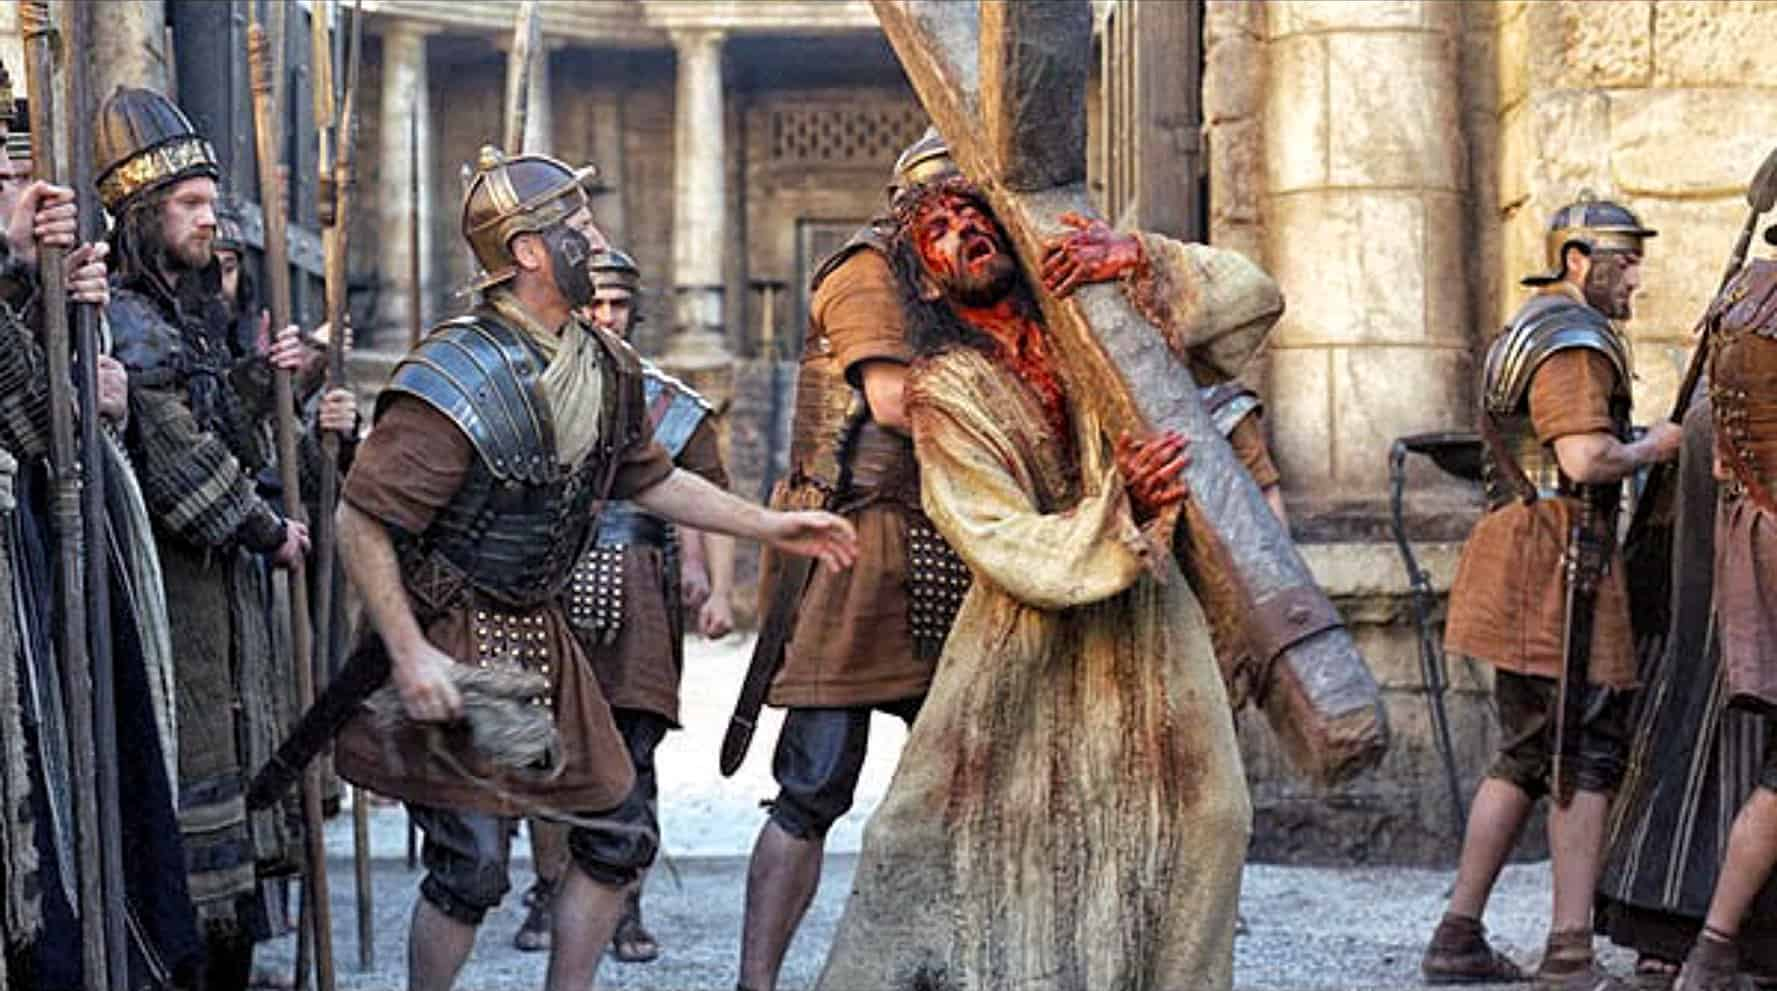 https://www.relevantmagazine.com/wp-content/uploads/2019/02/a86fac92-passionofthechrist_15years.jpg